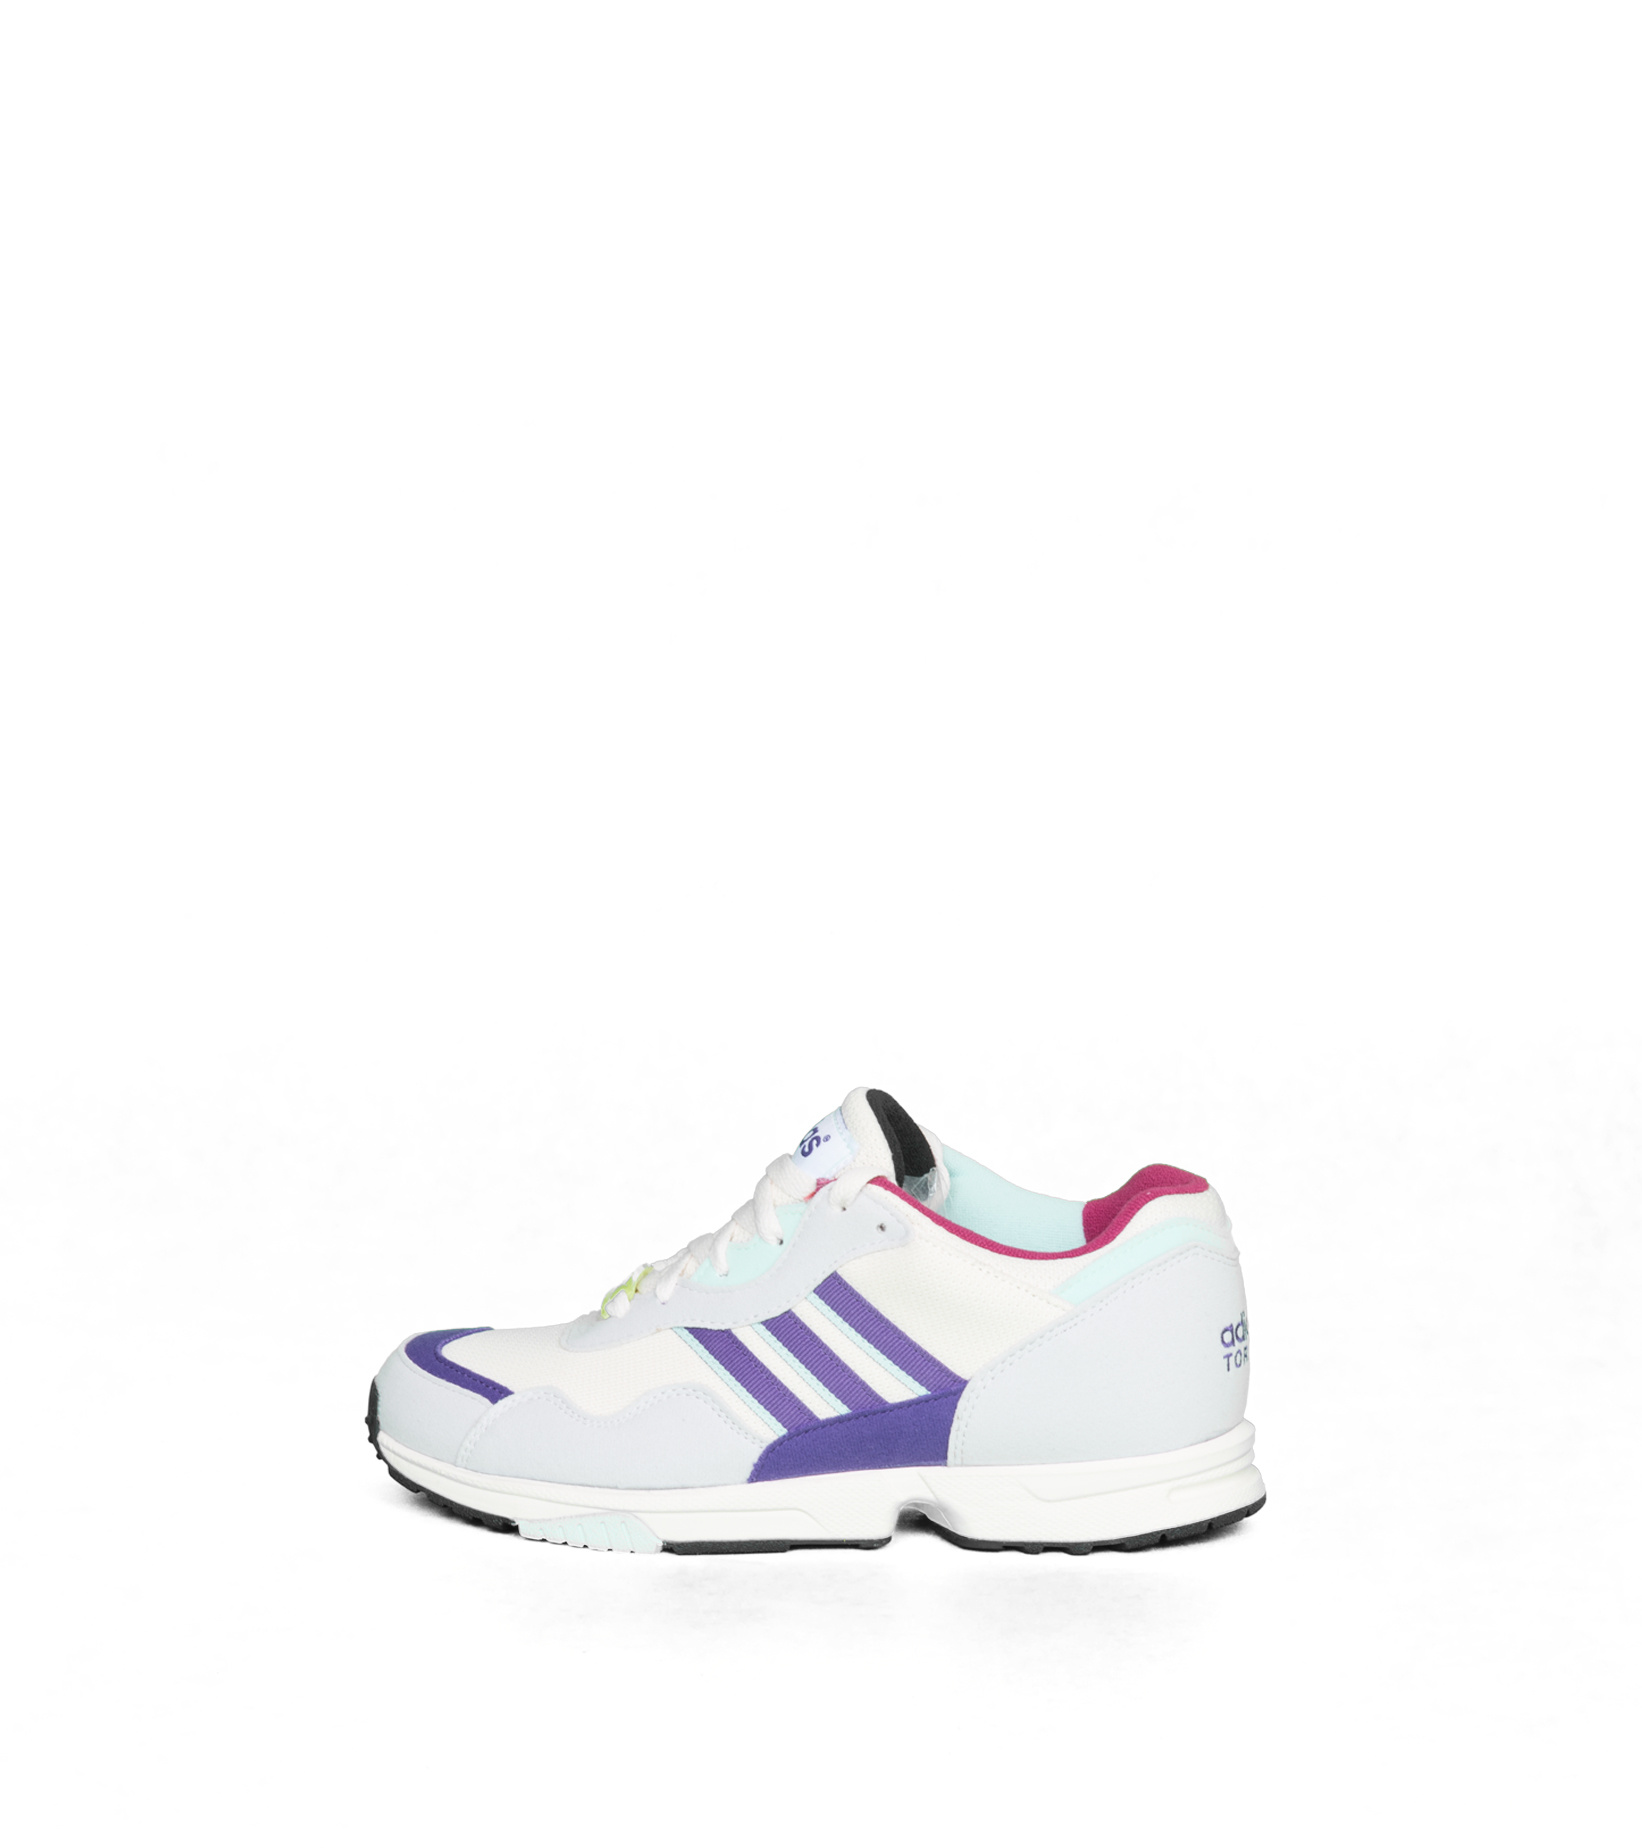 "Spezial Hrmny _NWRDR ""White/Pink/Mint""-3"